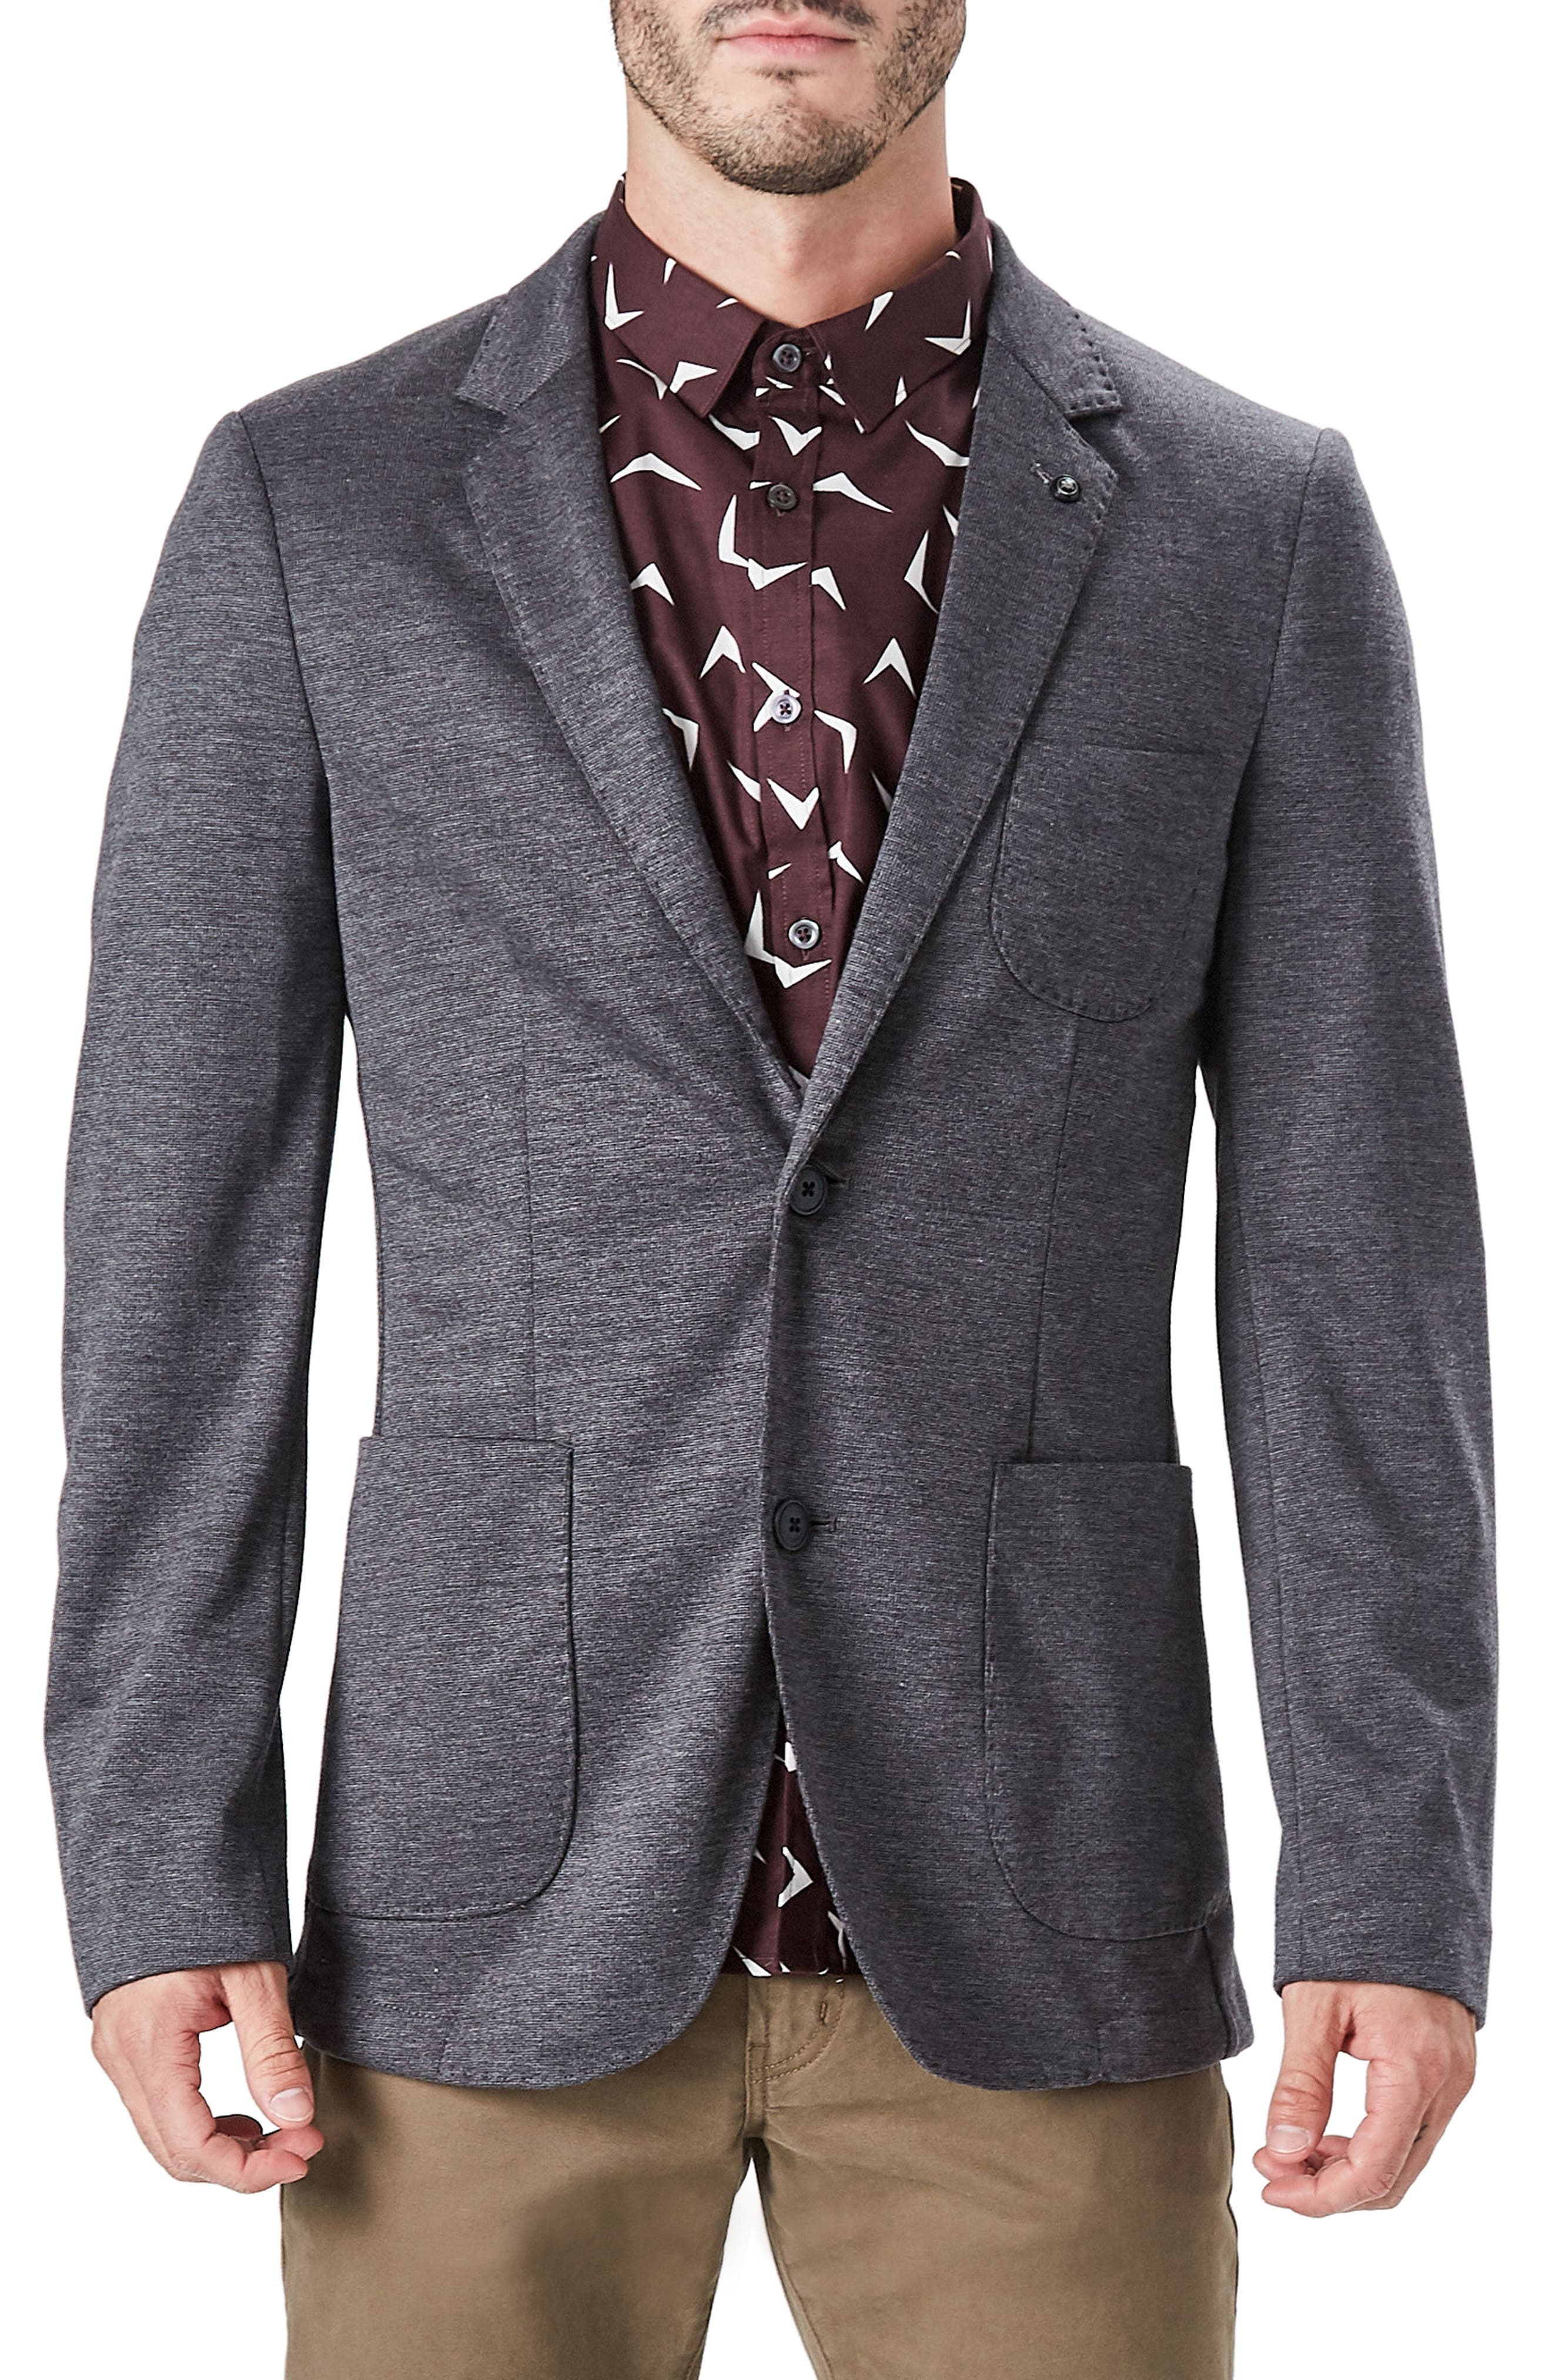 Massa Casual Blazer,                             Main thumbnail 1, color,                             Charcoal